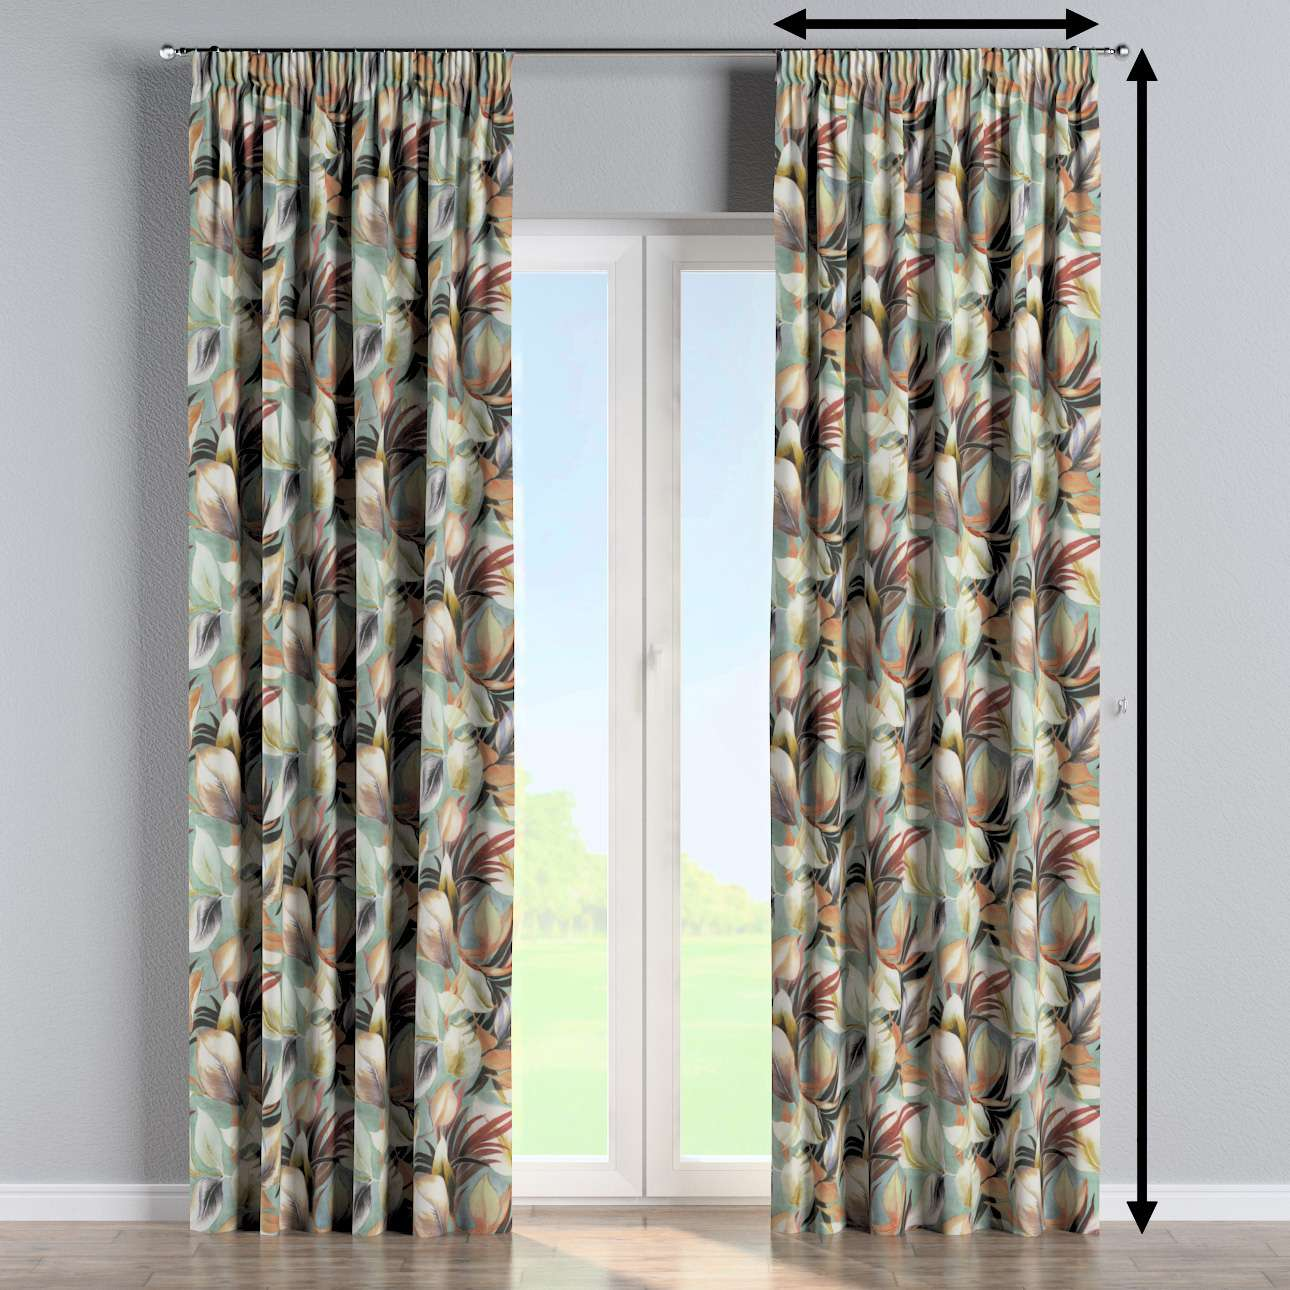 Pencil pleat curtain in collection Abigail, fabric: 143-61